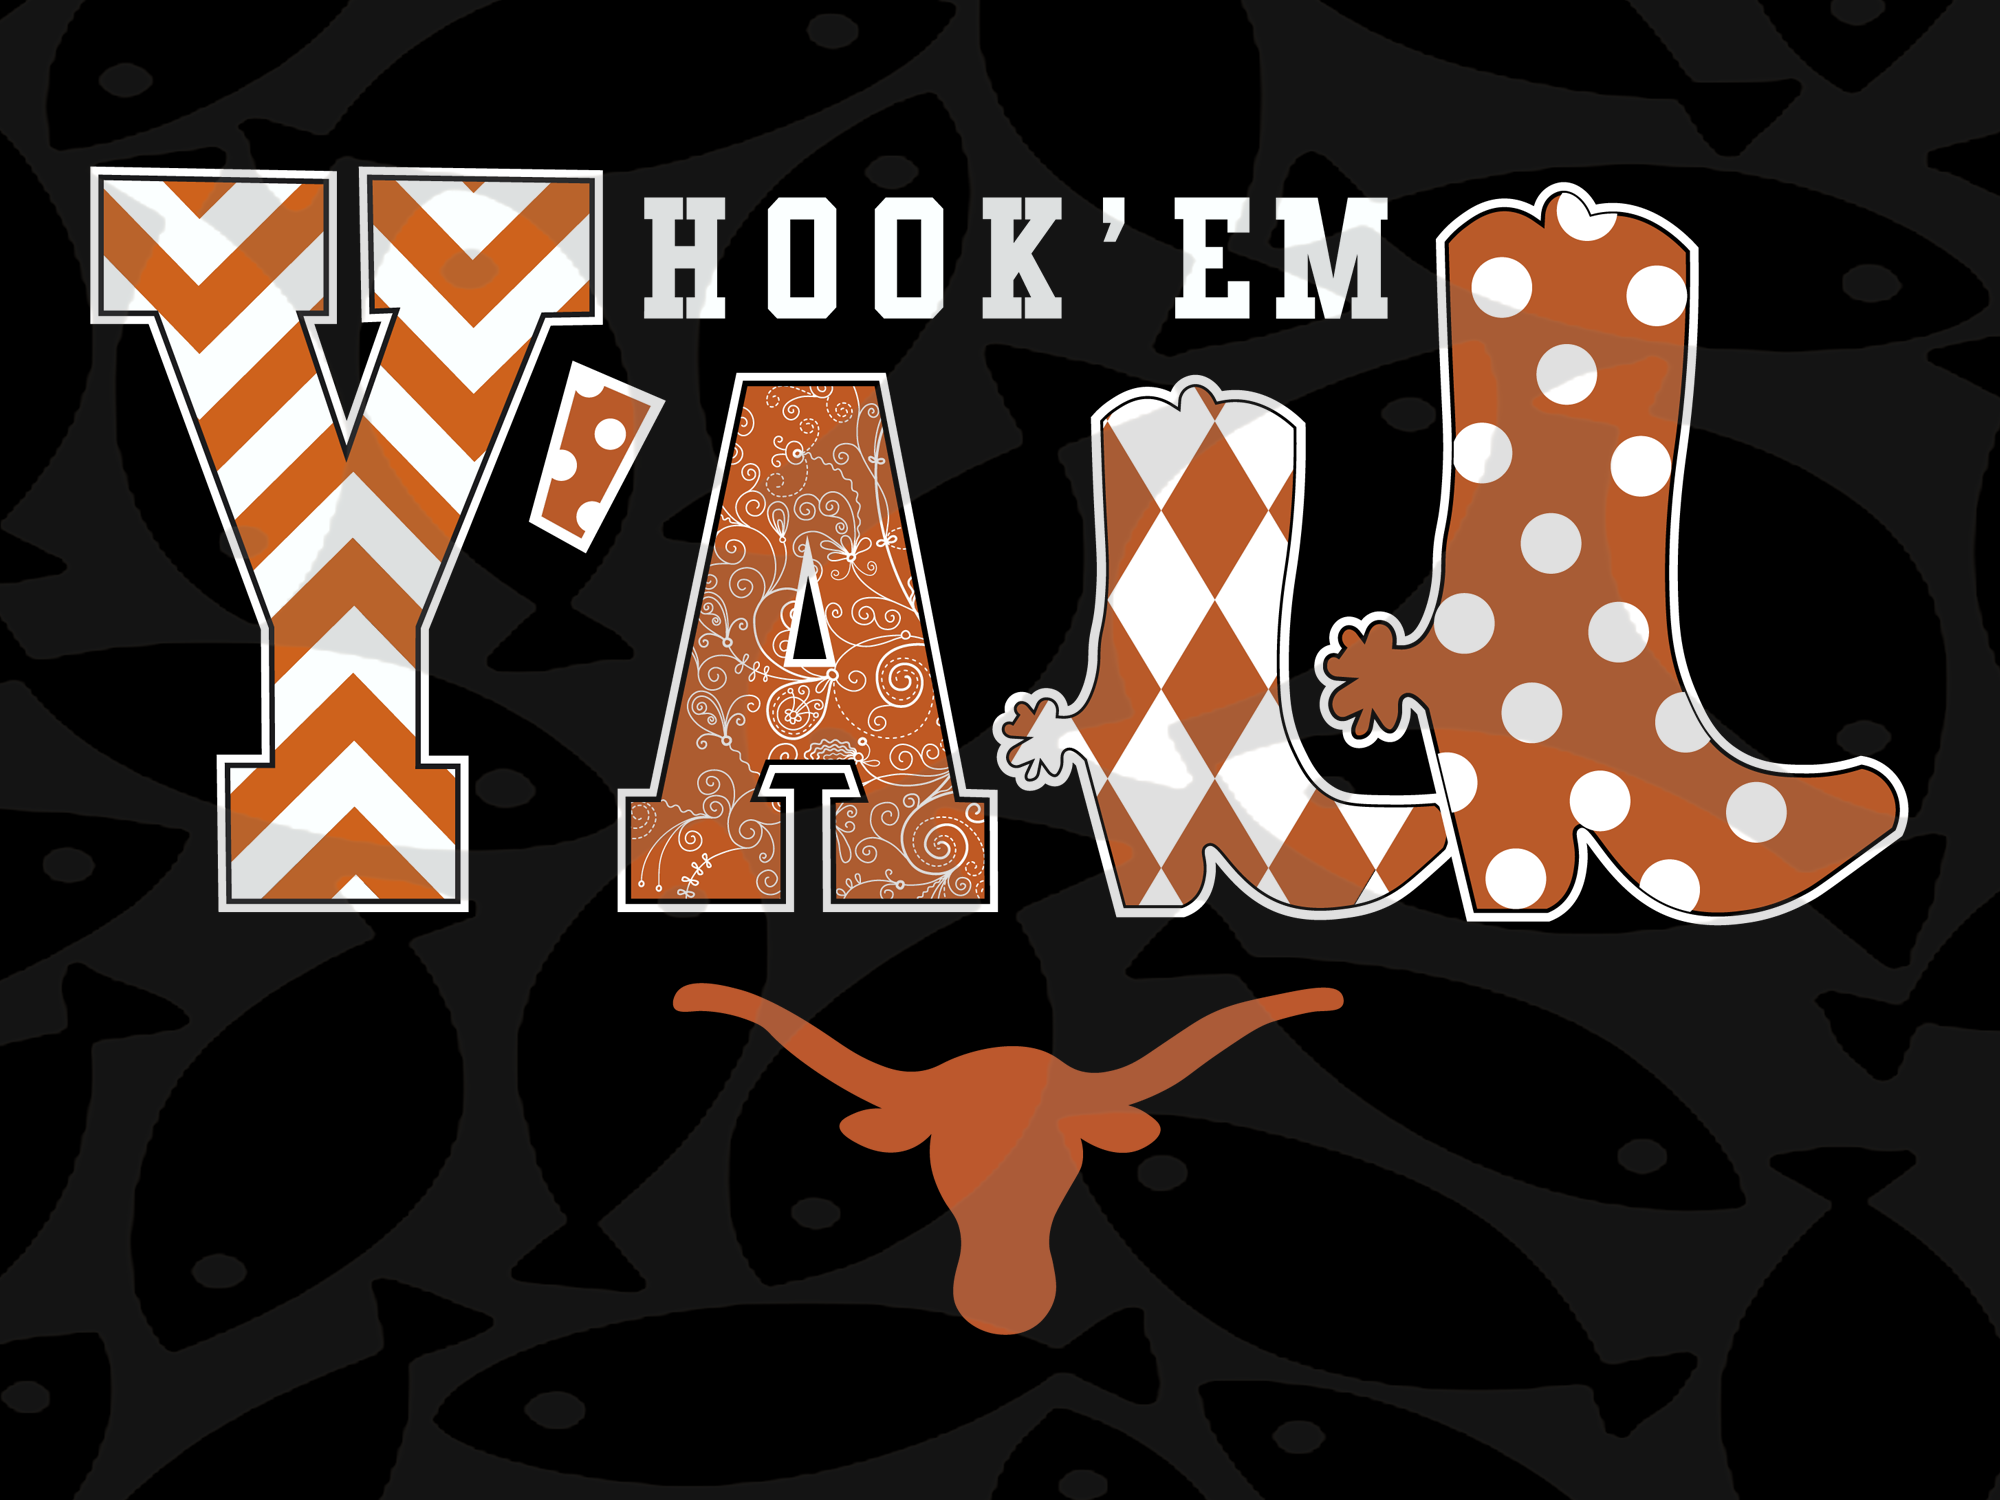 Hook'em y'all, texas longhorns, texas, university of texas, longhorns, texas longhorn, longhorn, texas football, austin texas,trending svg, Files For Silhouette, Files For Cricut, SVG, DXF, EPS, PNG, Instant Download